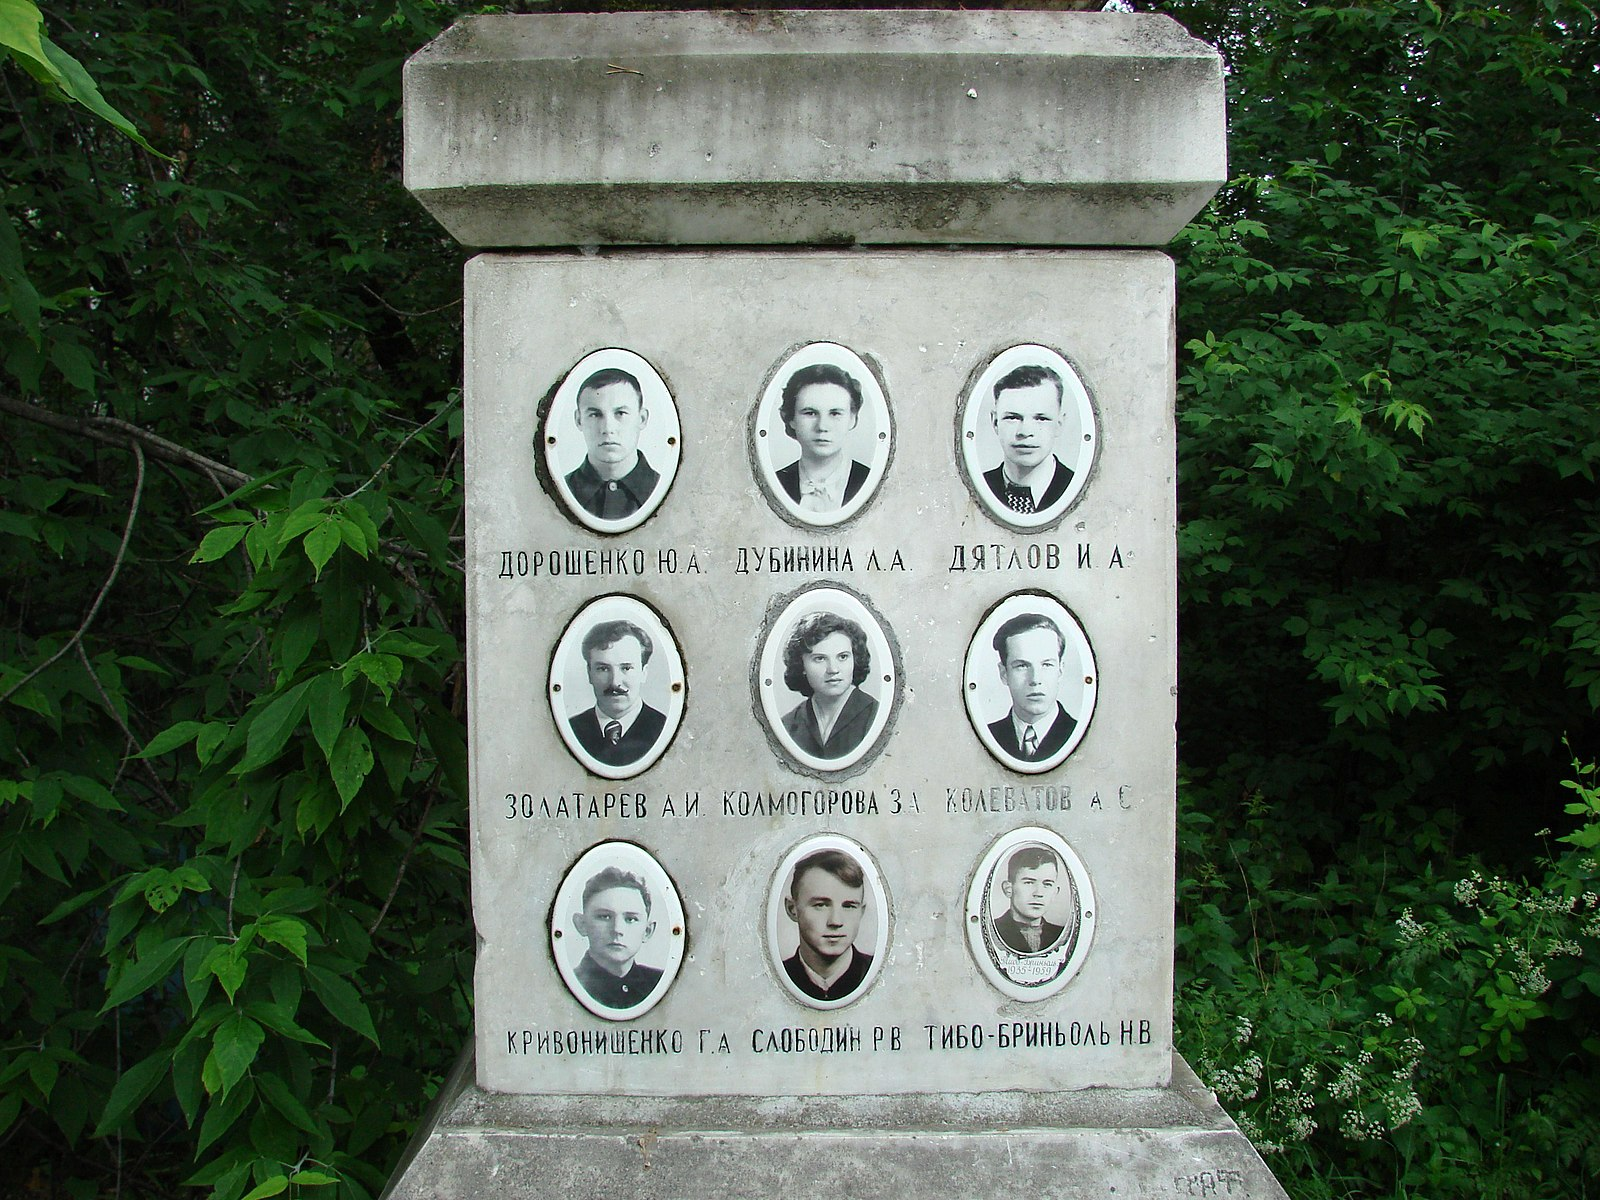 The tomb of the group who had died in mysterious circumstances in the northern Ural Mountains.